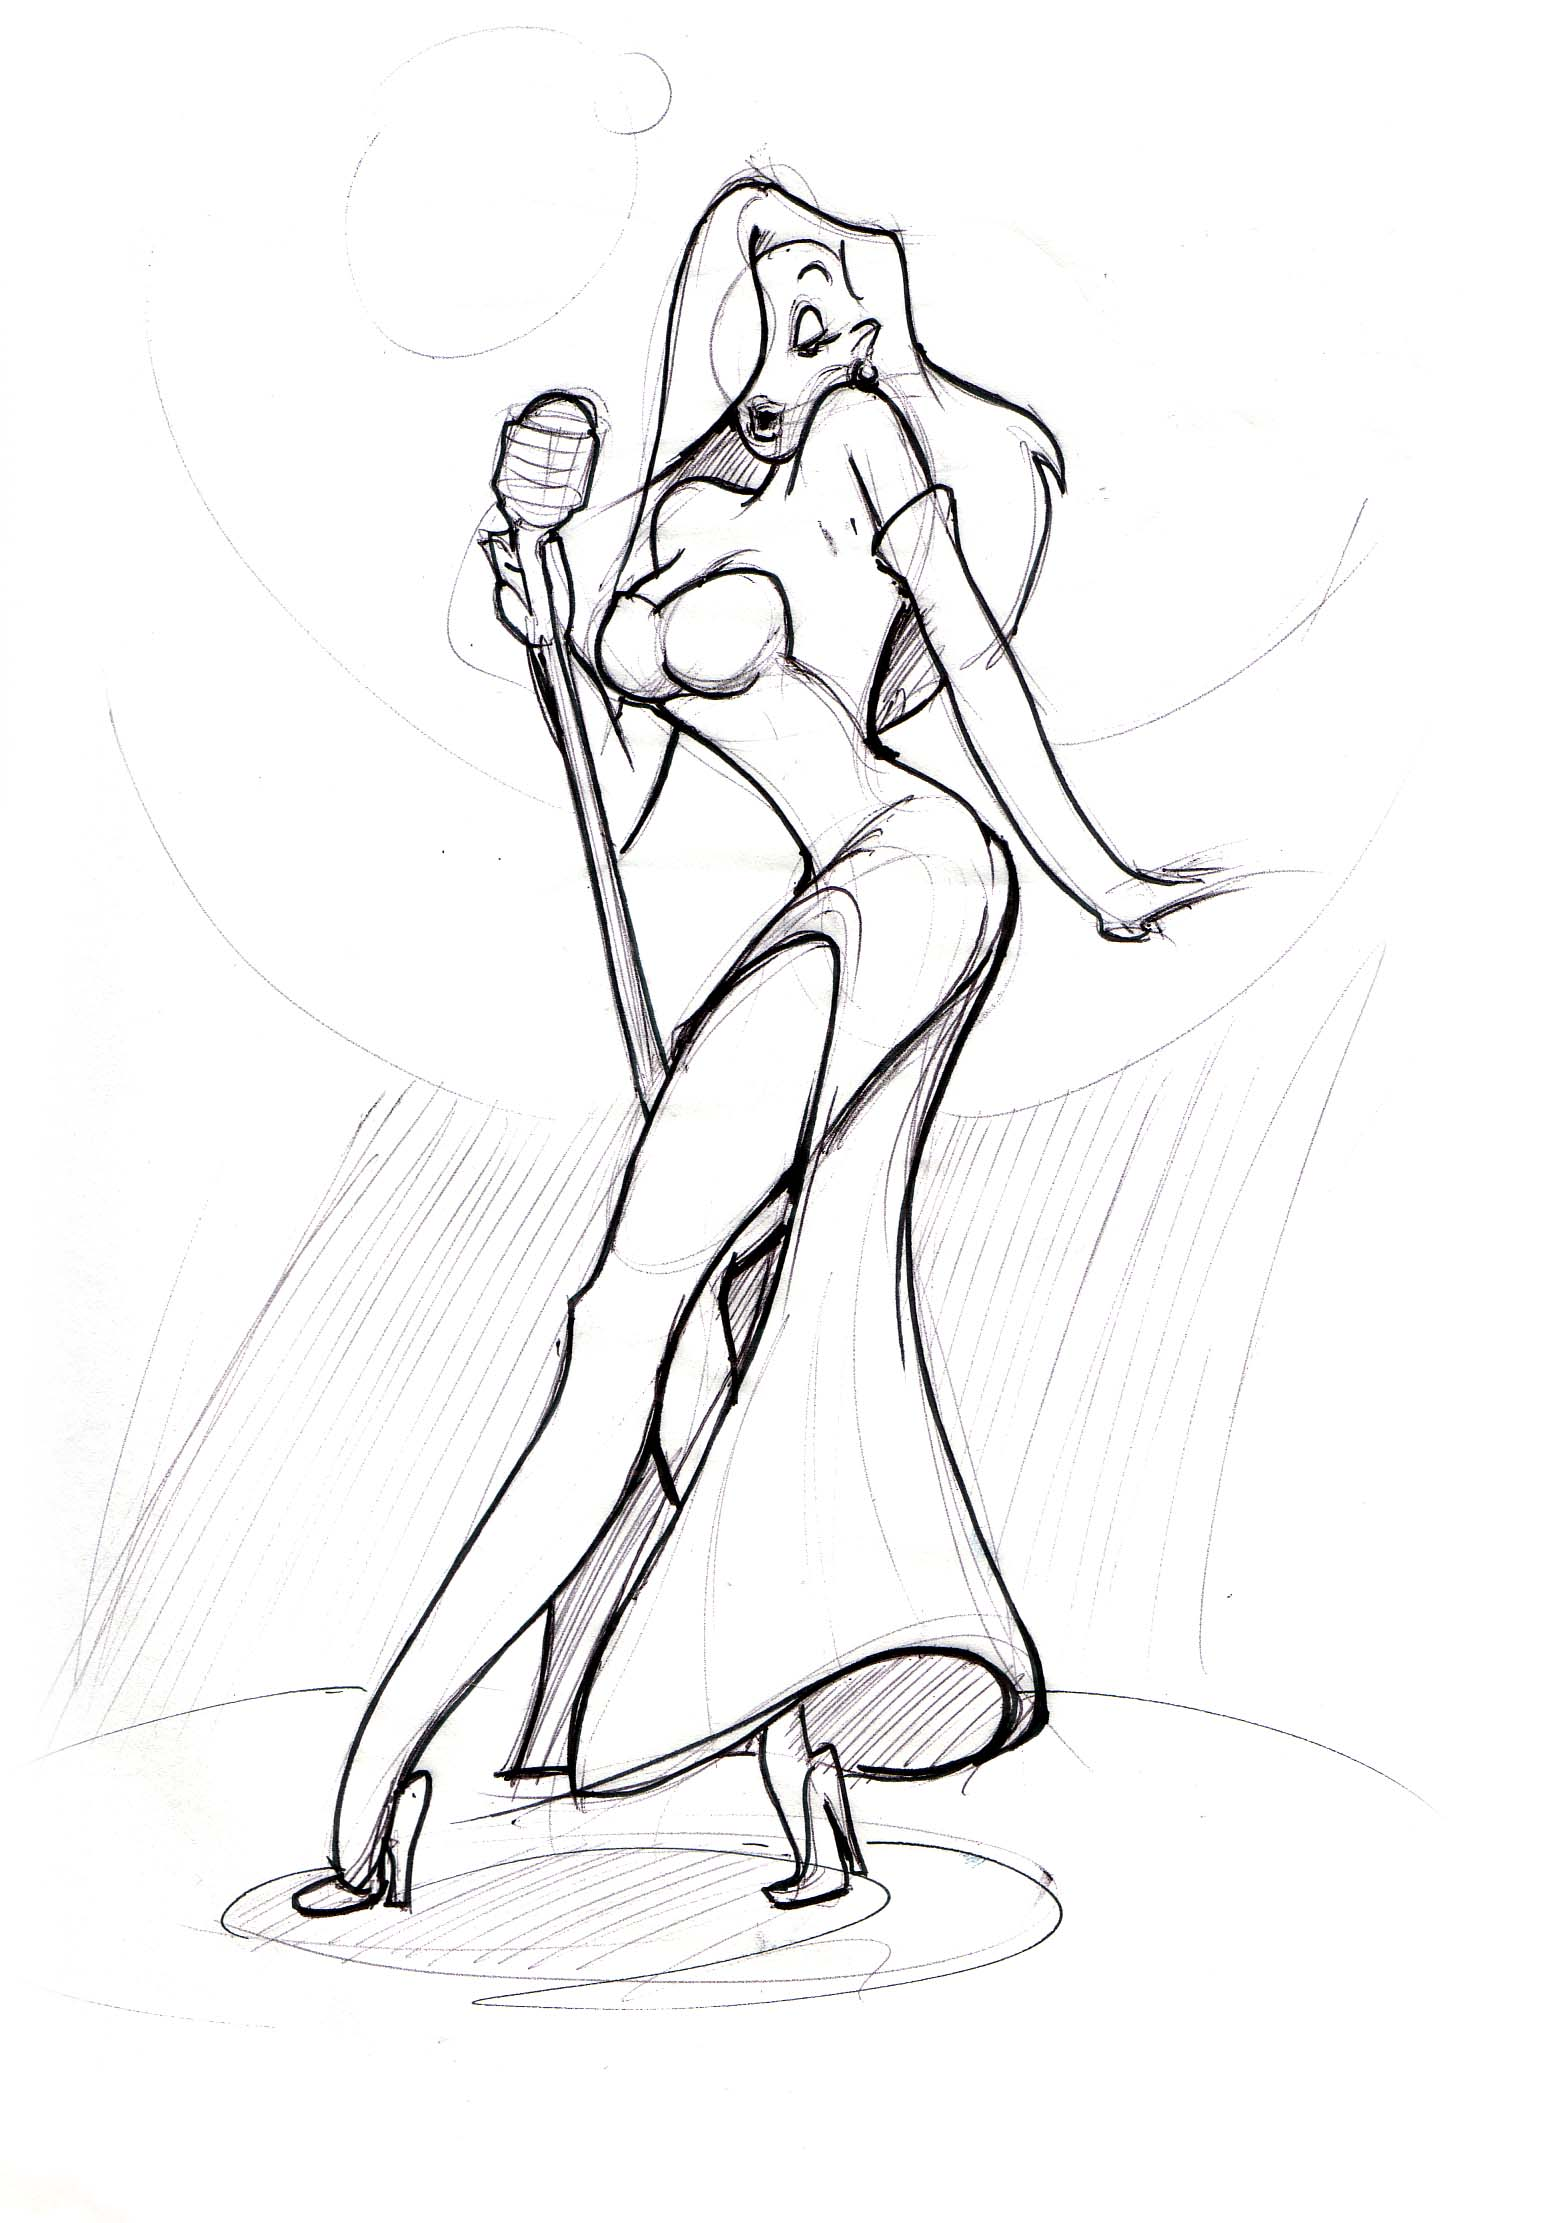 Drawn rabbit jessica rabbit Lineweights Jessica rabbit_1 jessica Rabbit!